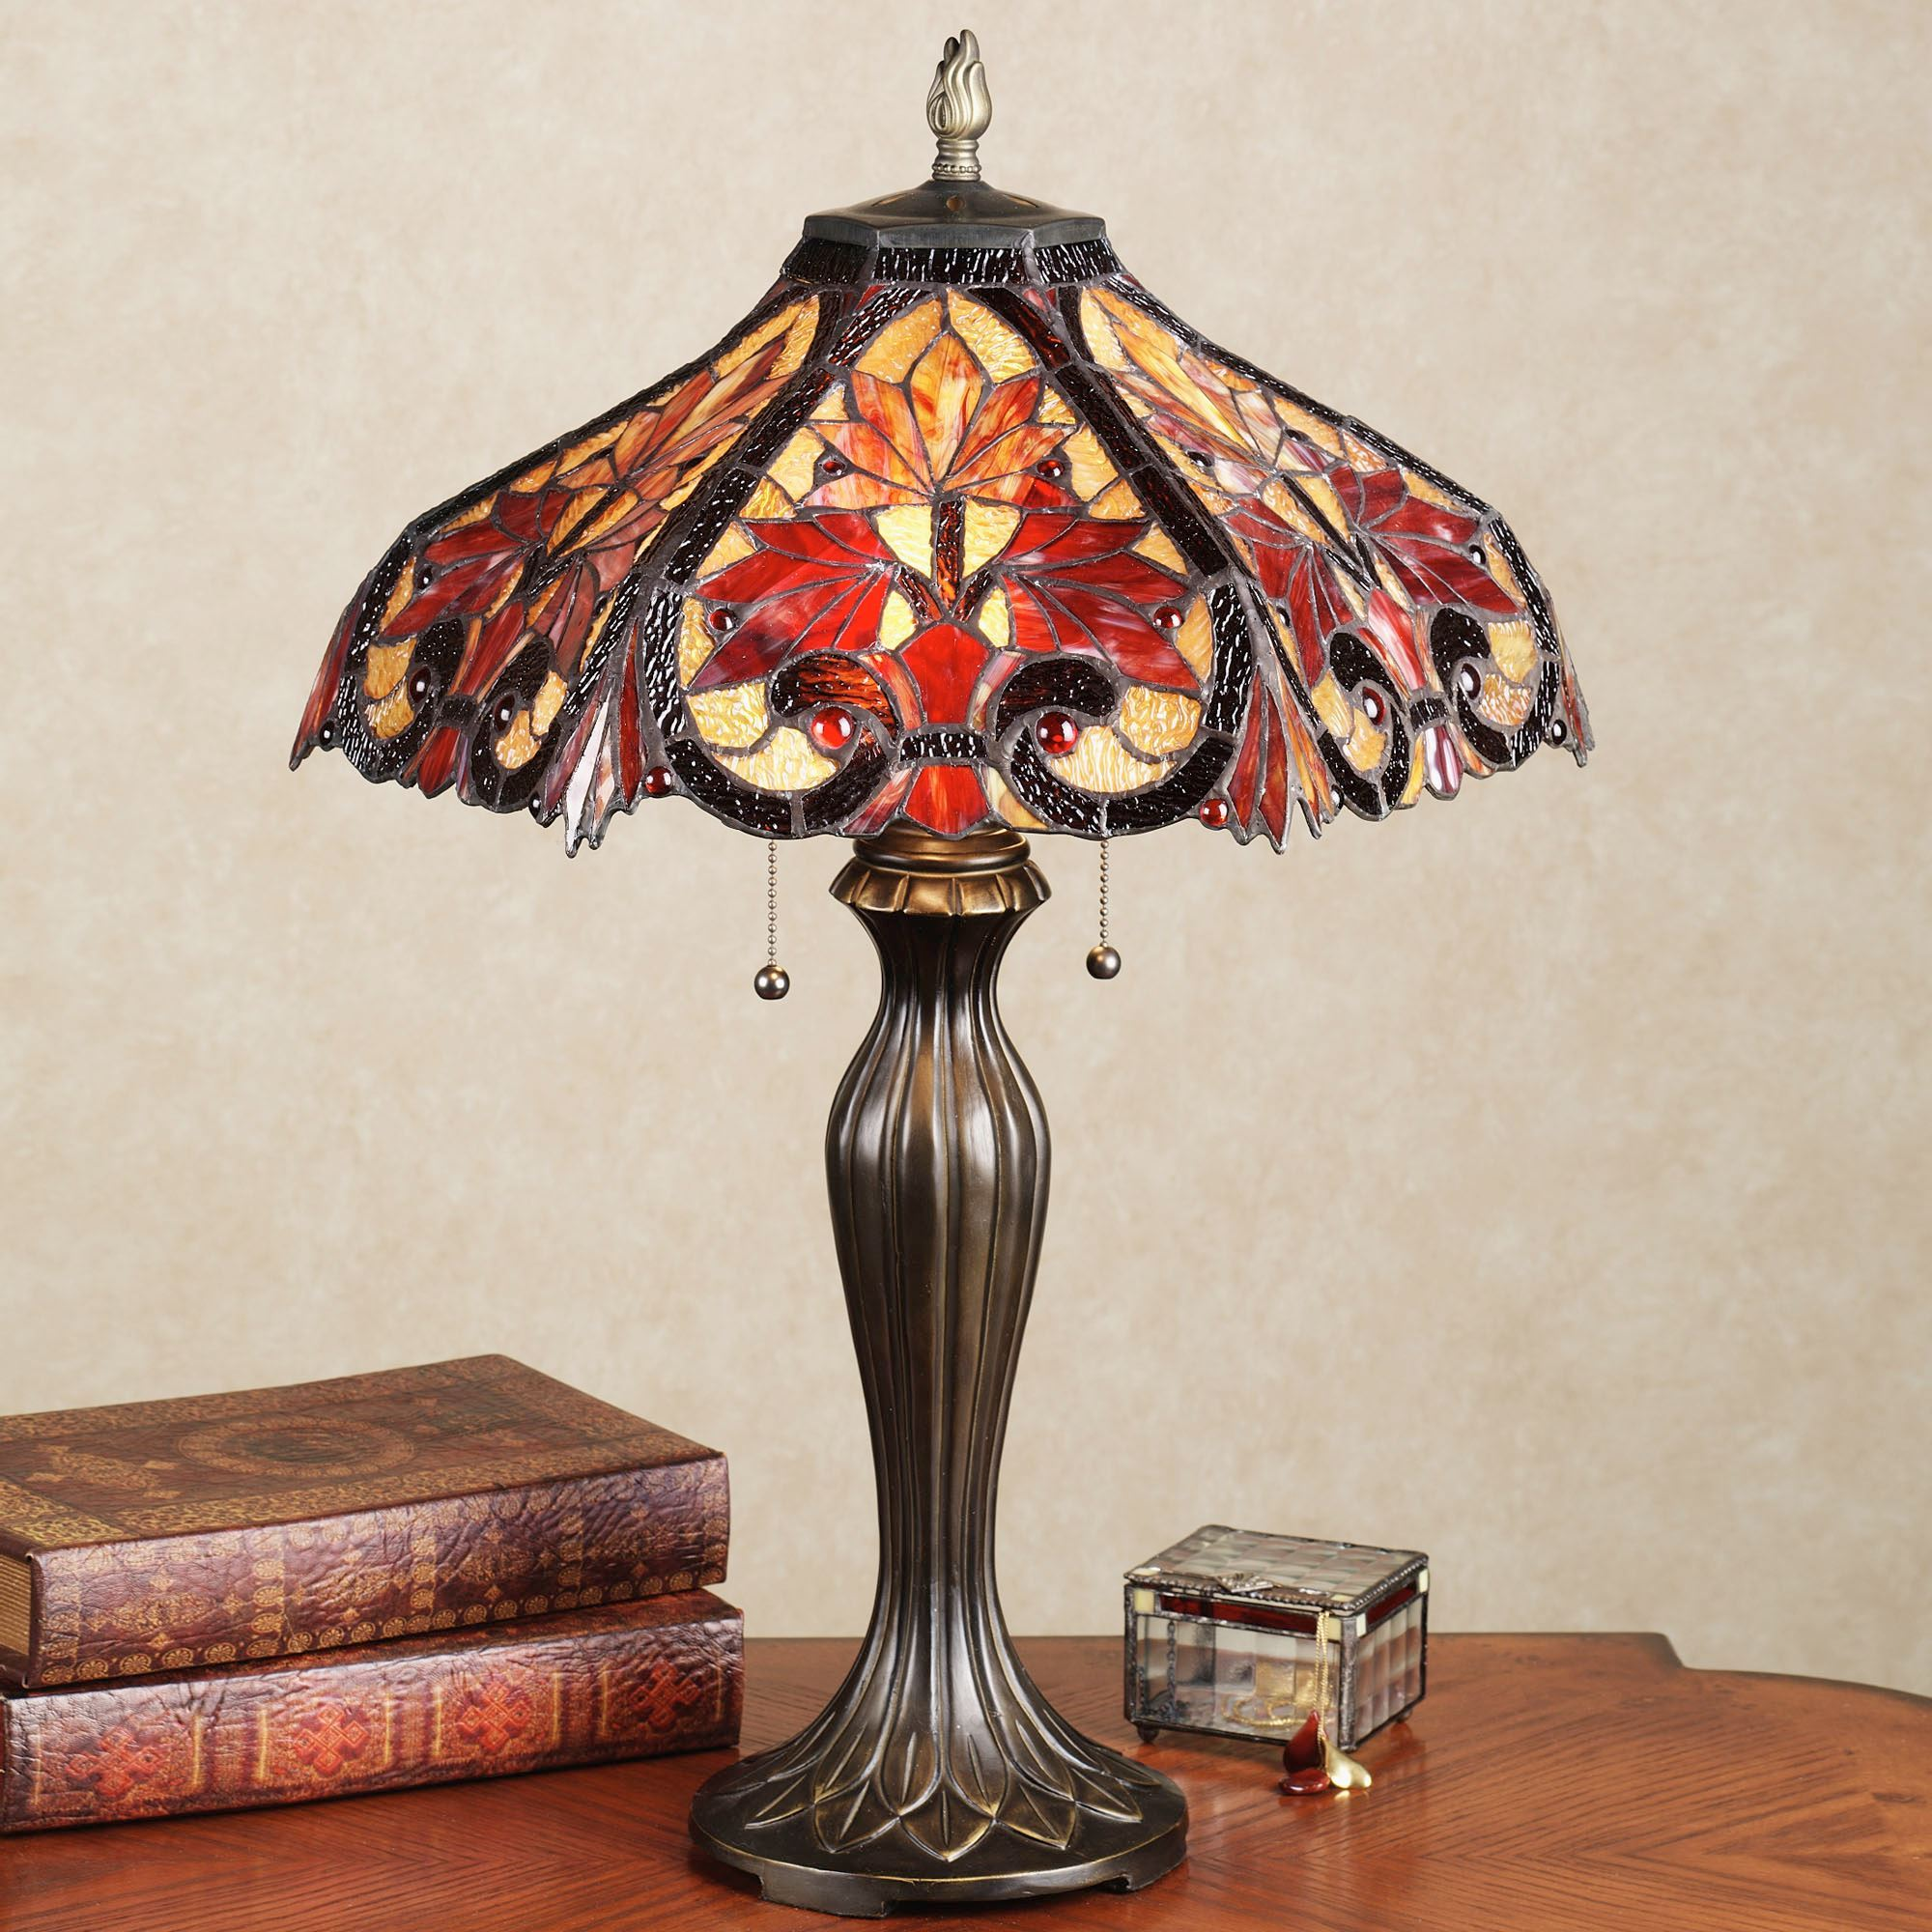 Floor Table Lamps Whispering Foliage Stained Glass Table Lamp